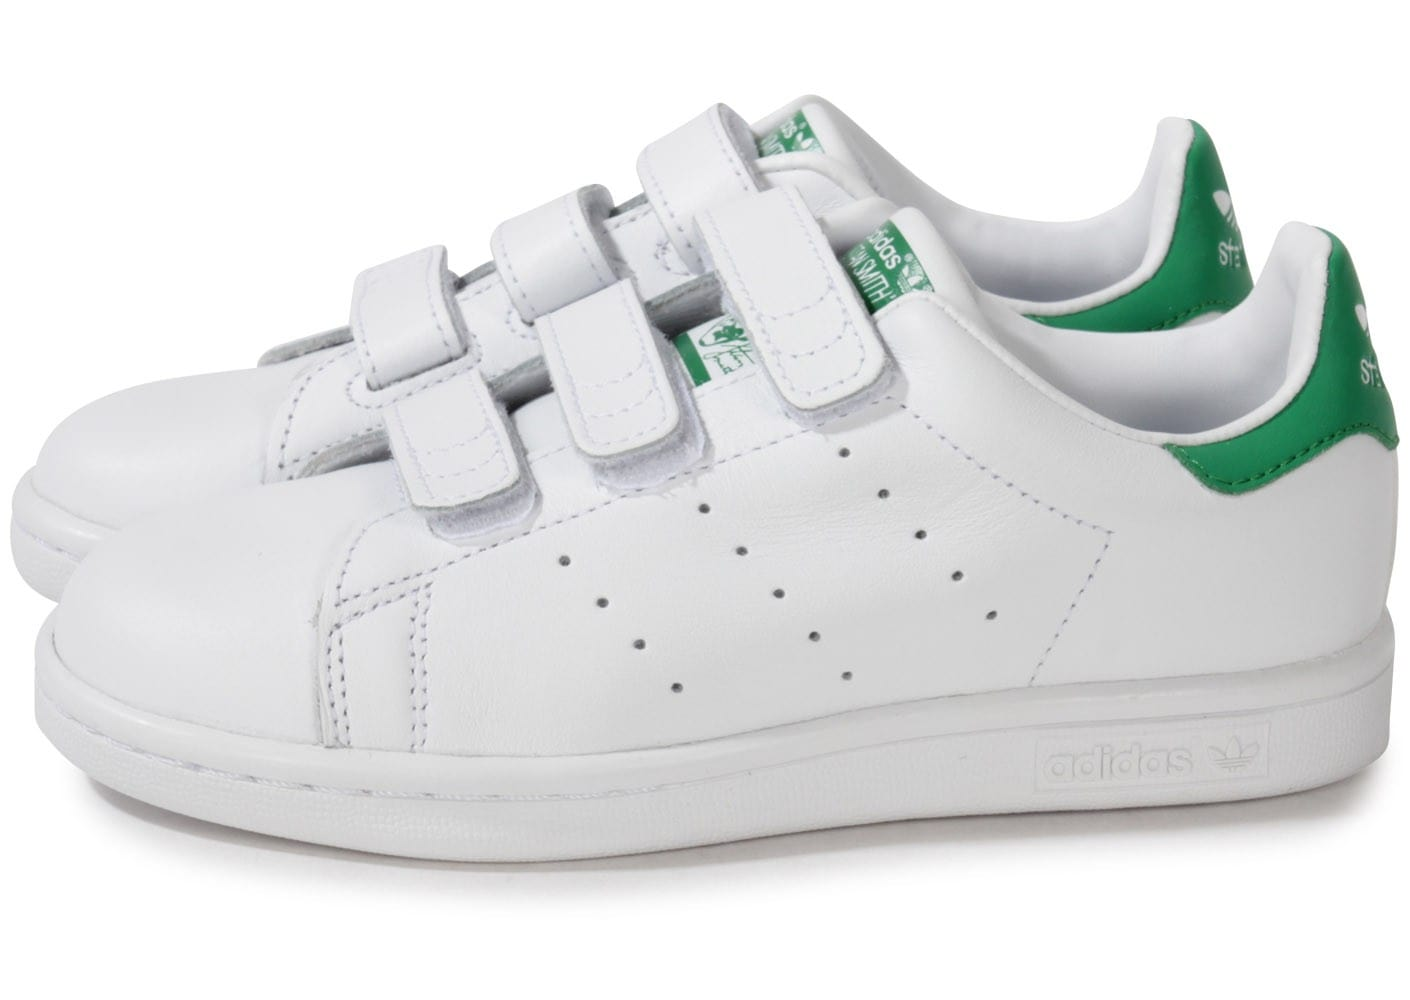 adidas stan smith verte blanche enfant chaussures adidas chausport. Black Bedroom Furniture Sets. Home Design Ideas